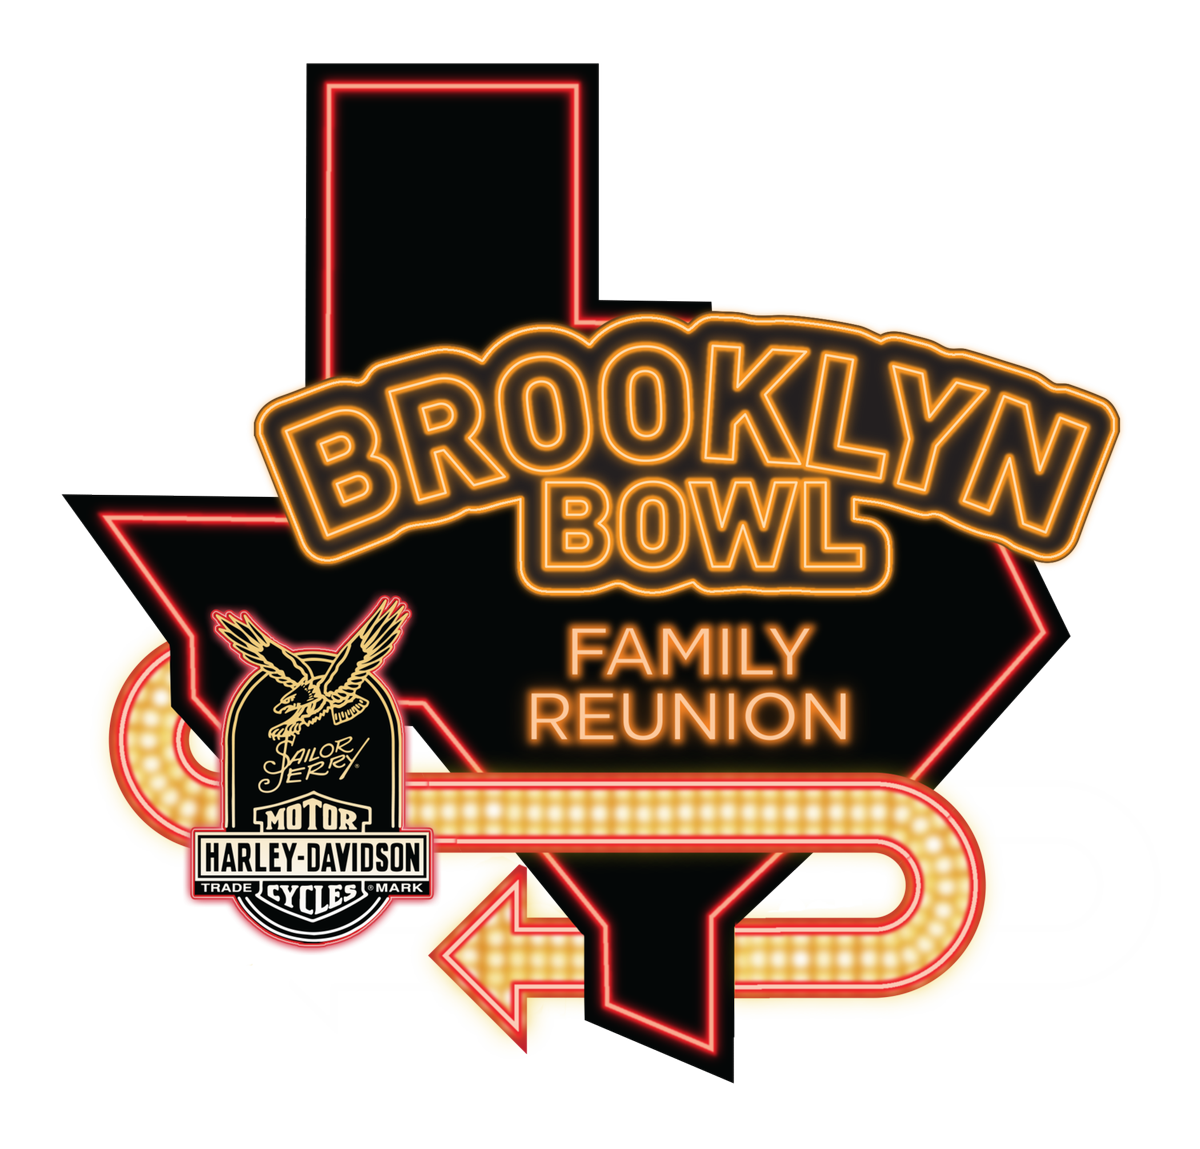 Brooklyn Bowl On Twitter Rsvp Now We Ll Also Have Brand New